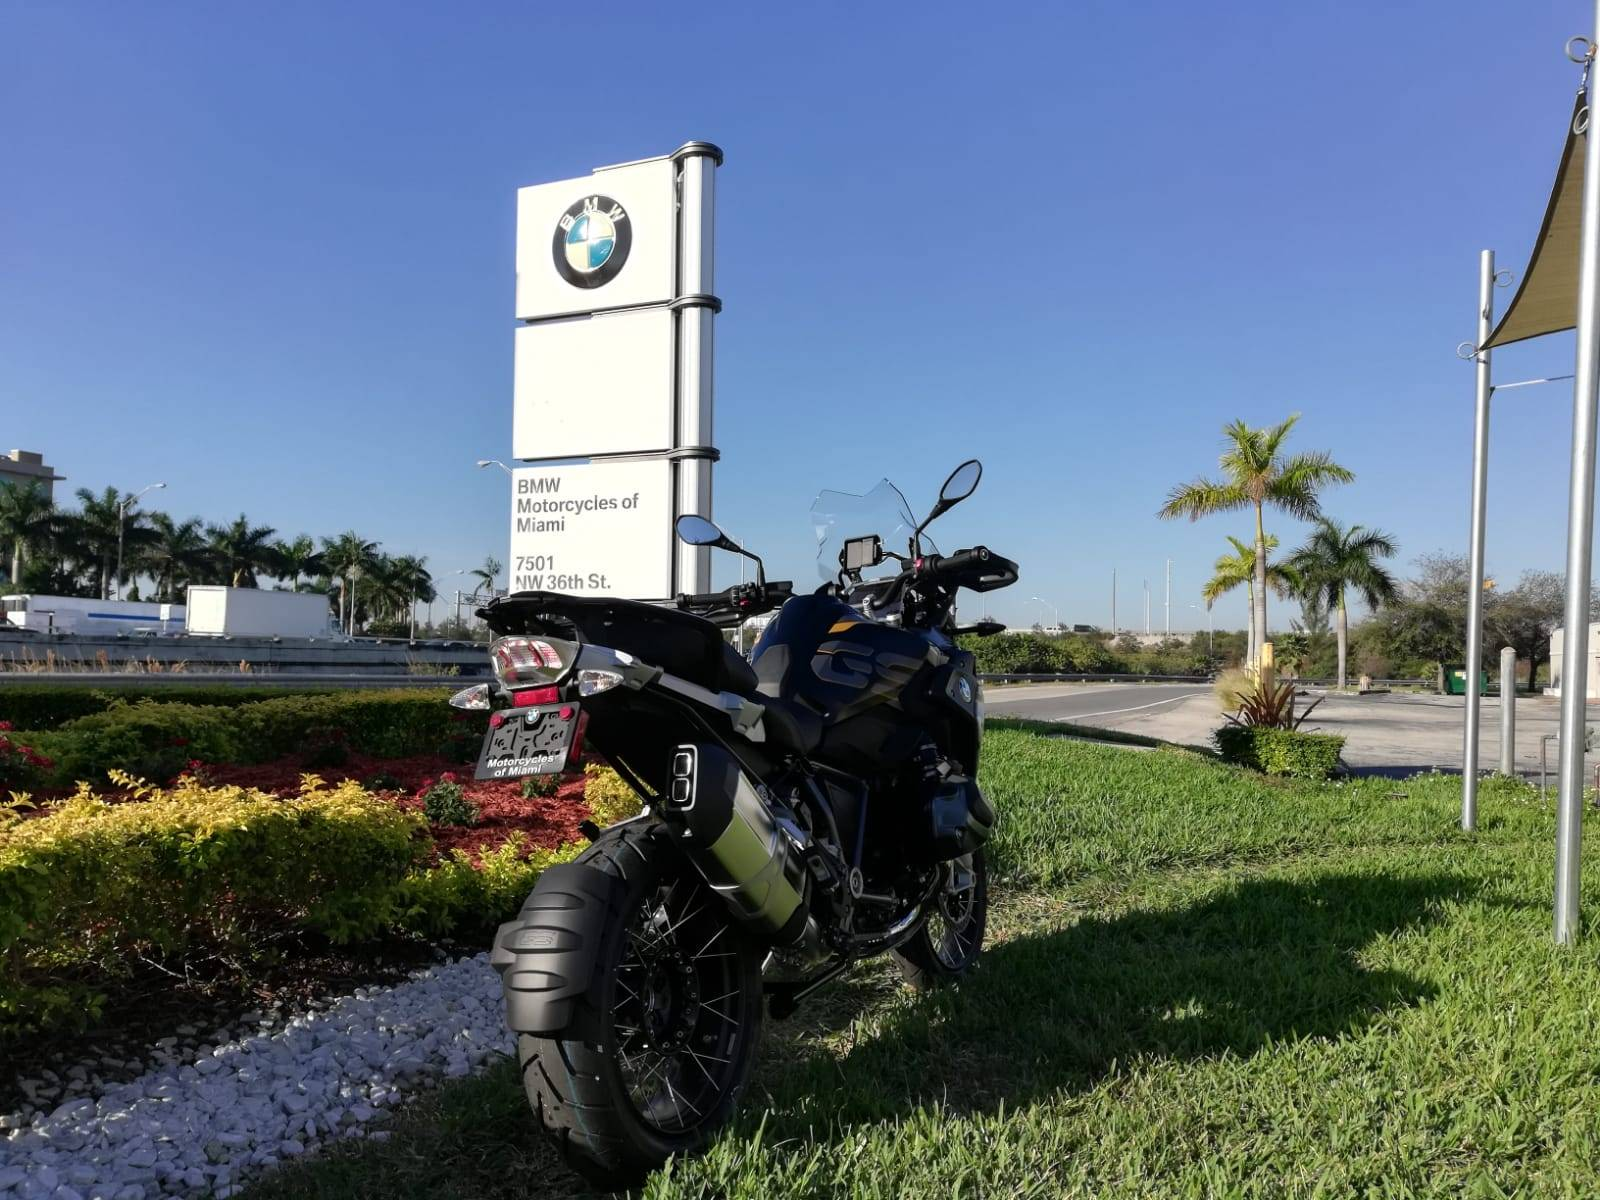 New 2019 BMW R 1250 GS for sale, BMW R 1250GS for sale, BMW Motorcycle GS, new BMW GS, Spirit of GS, BMW Motorcycles of Miami, Motorcycles of Miami, Motorcycles Miami, New Motorcycles, Used Motorcycles, pre-owned. #BMWMotorcyclesOfMiami #MotorcyclesOfMiami. - Photo 19